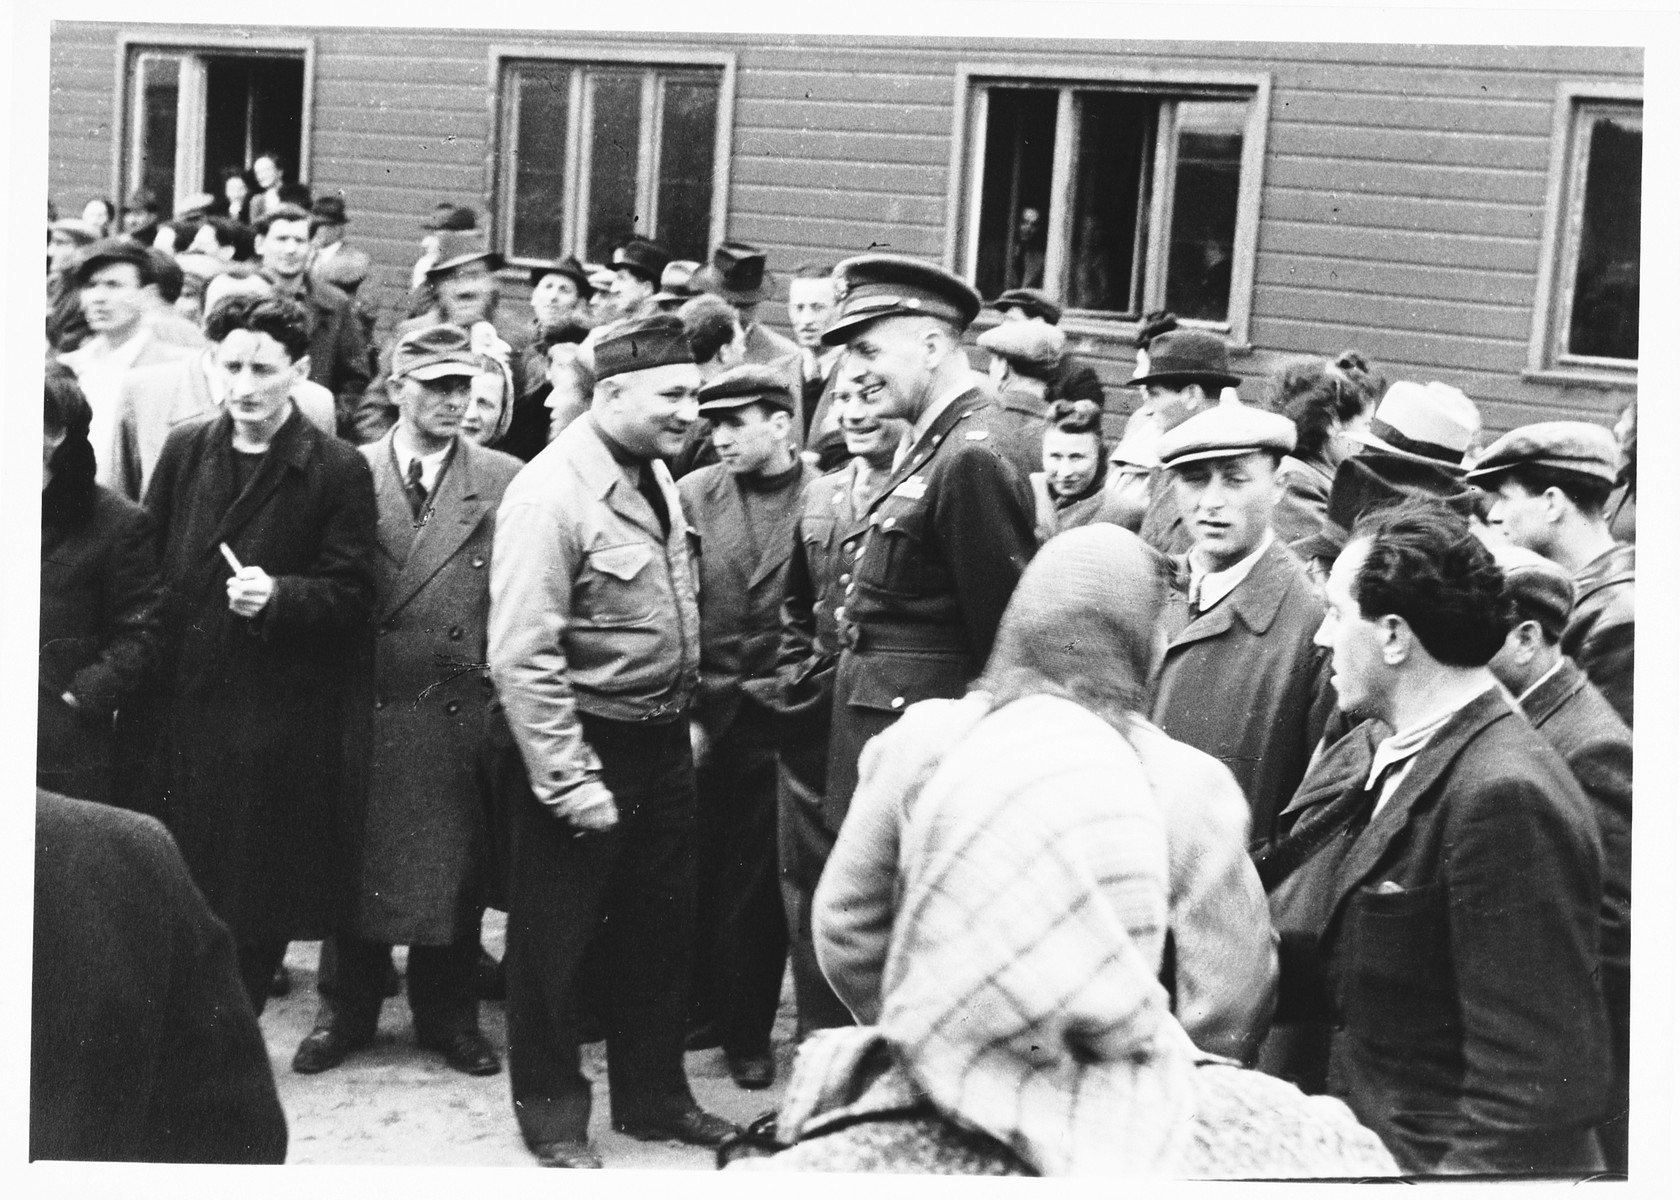 UNRRA camp director, Harold Fishbein (in the light jacket), converses with an American military officer amid a crowd of Jewish DPs outside a barracks in the Schlachtensee displaced persons camp.    Moise Finkelsztajn is on the right.